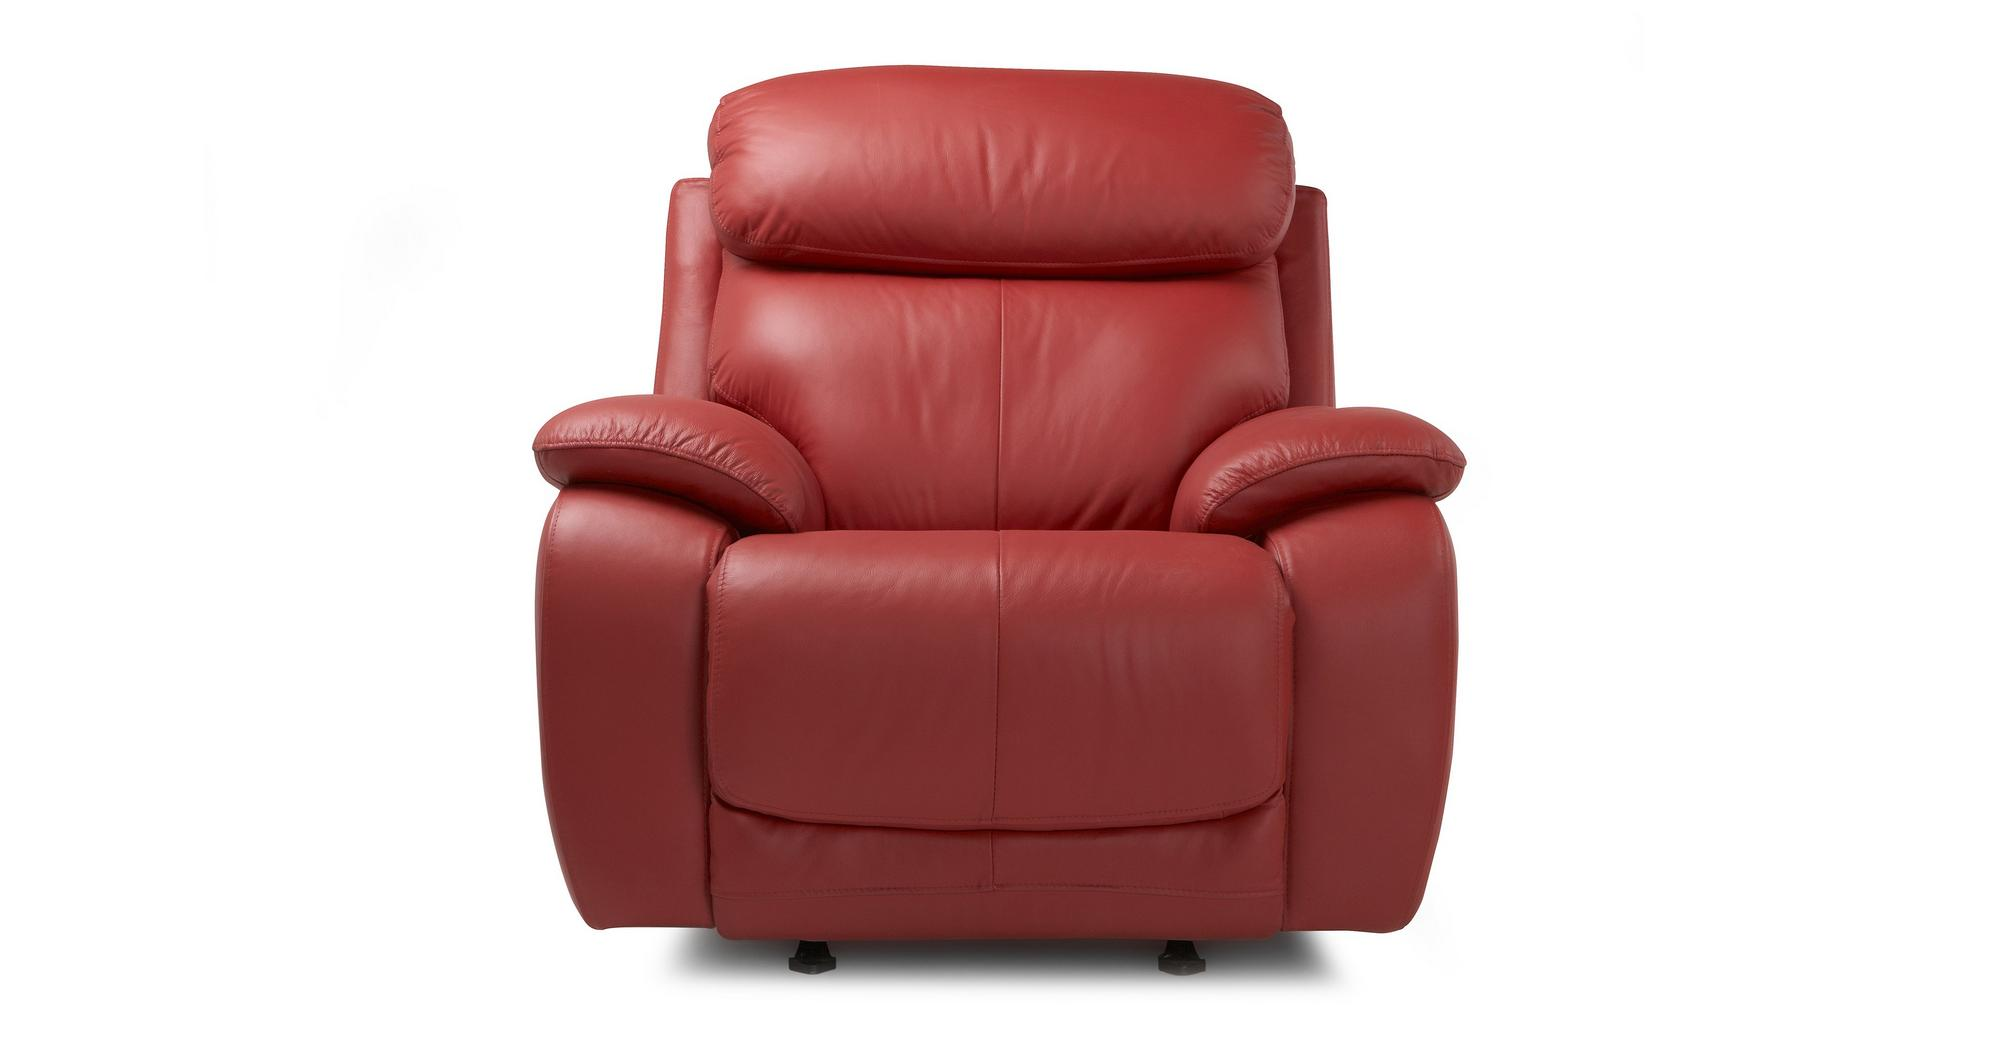 Red Leather Rocking Chair ~ Dfs daytona rosso red leather rocker recliner chair ebay